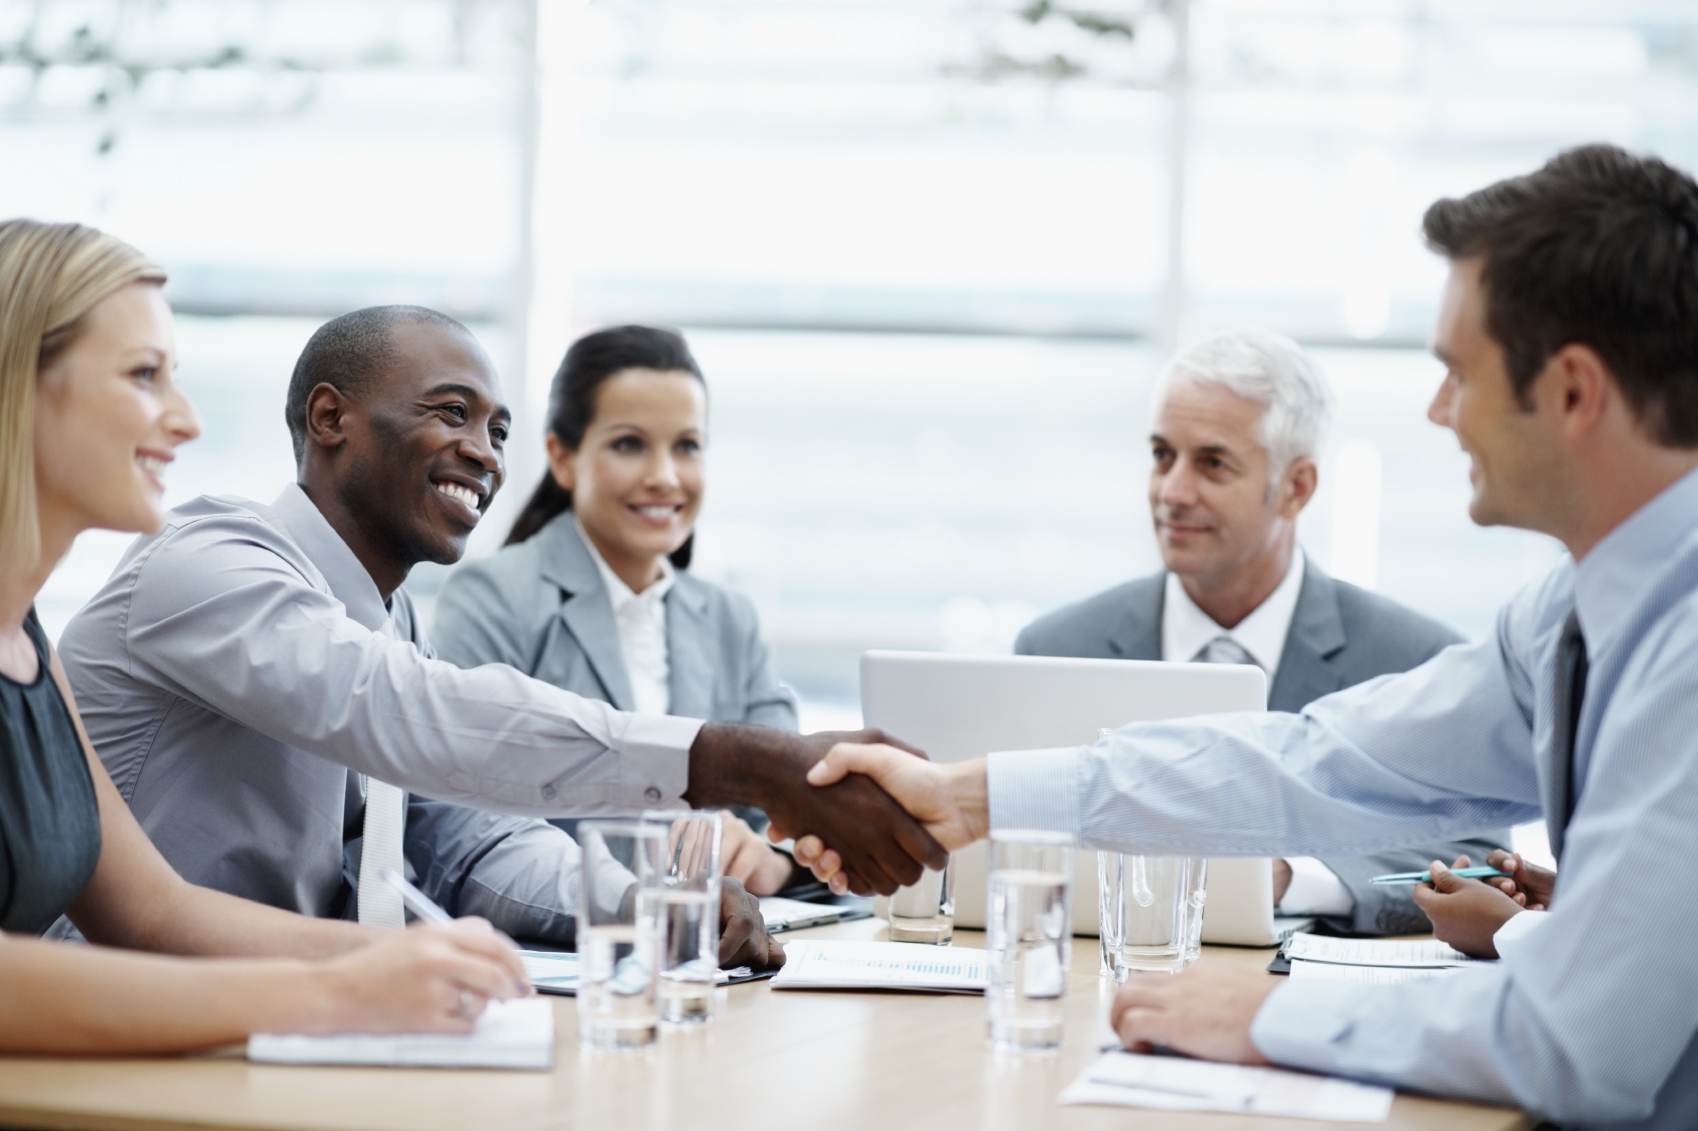 Young business men shaking hands happily in the conference room